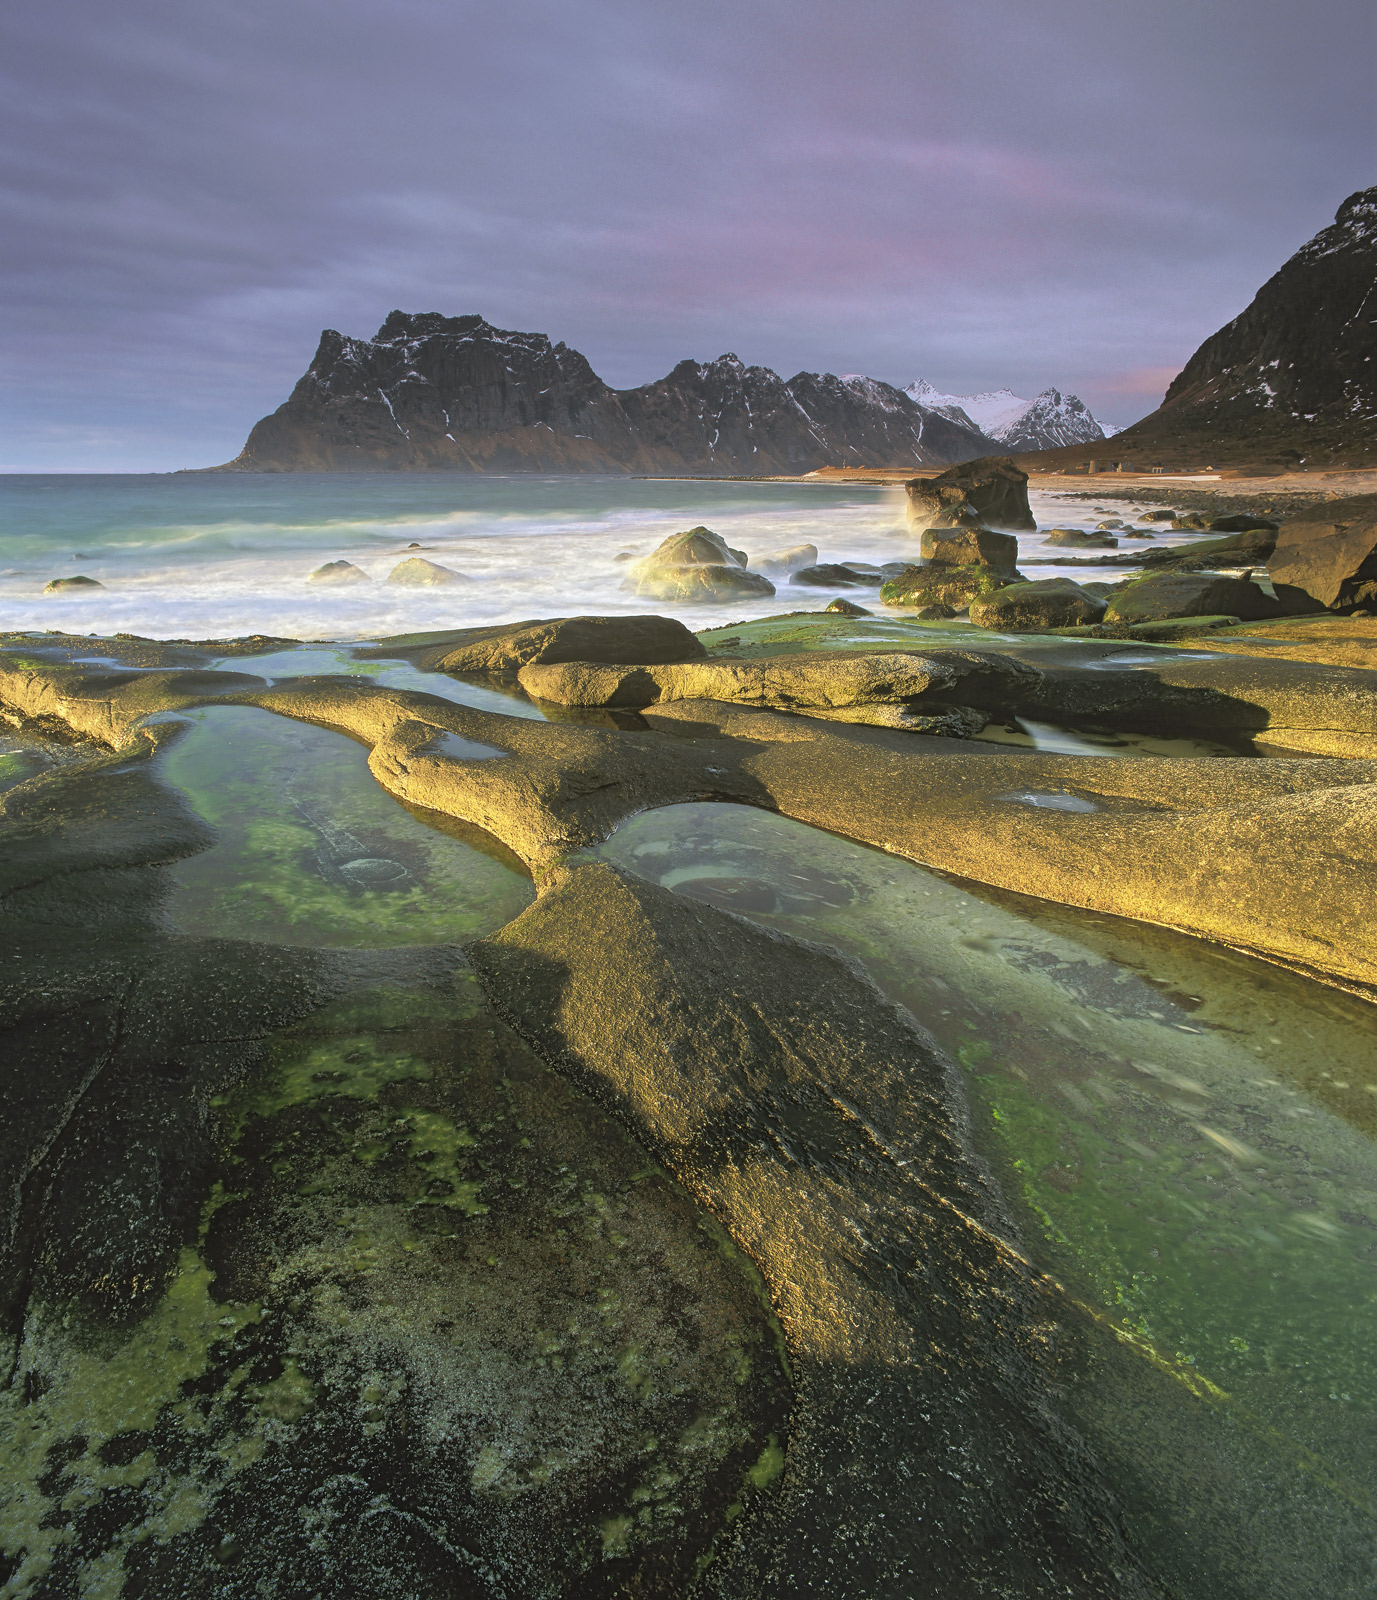 Uttakliev is Lofoten's answer to the Isle of Skye's Elgol and has similar popularity especially for landscape photographers.&...